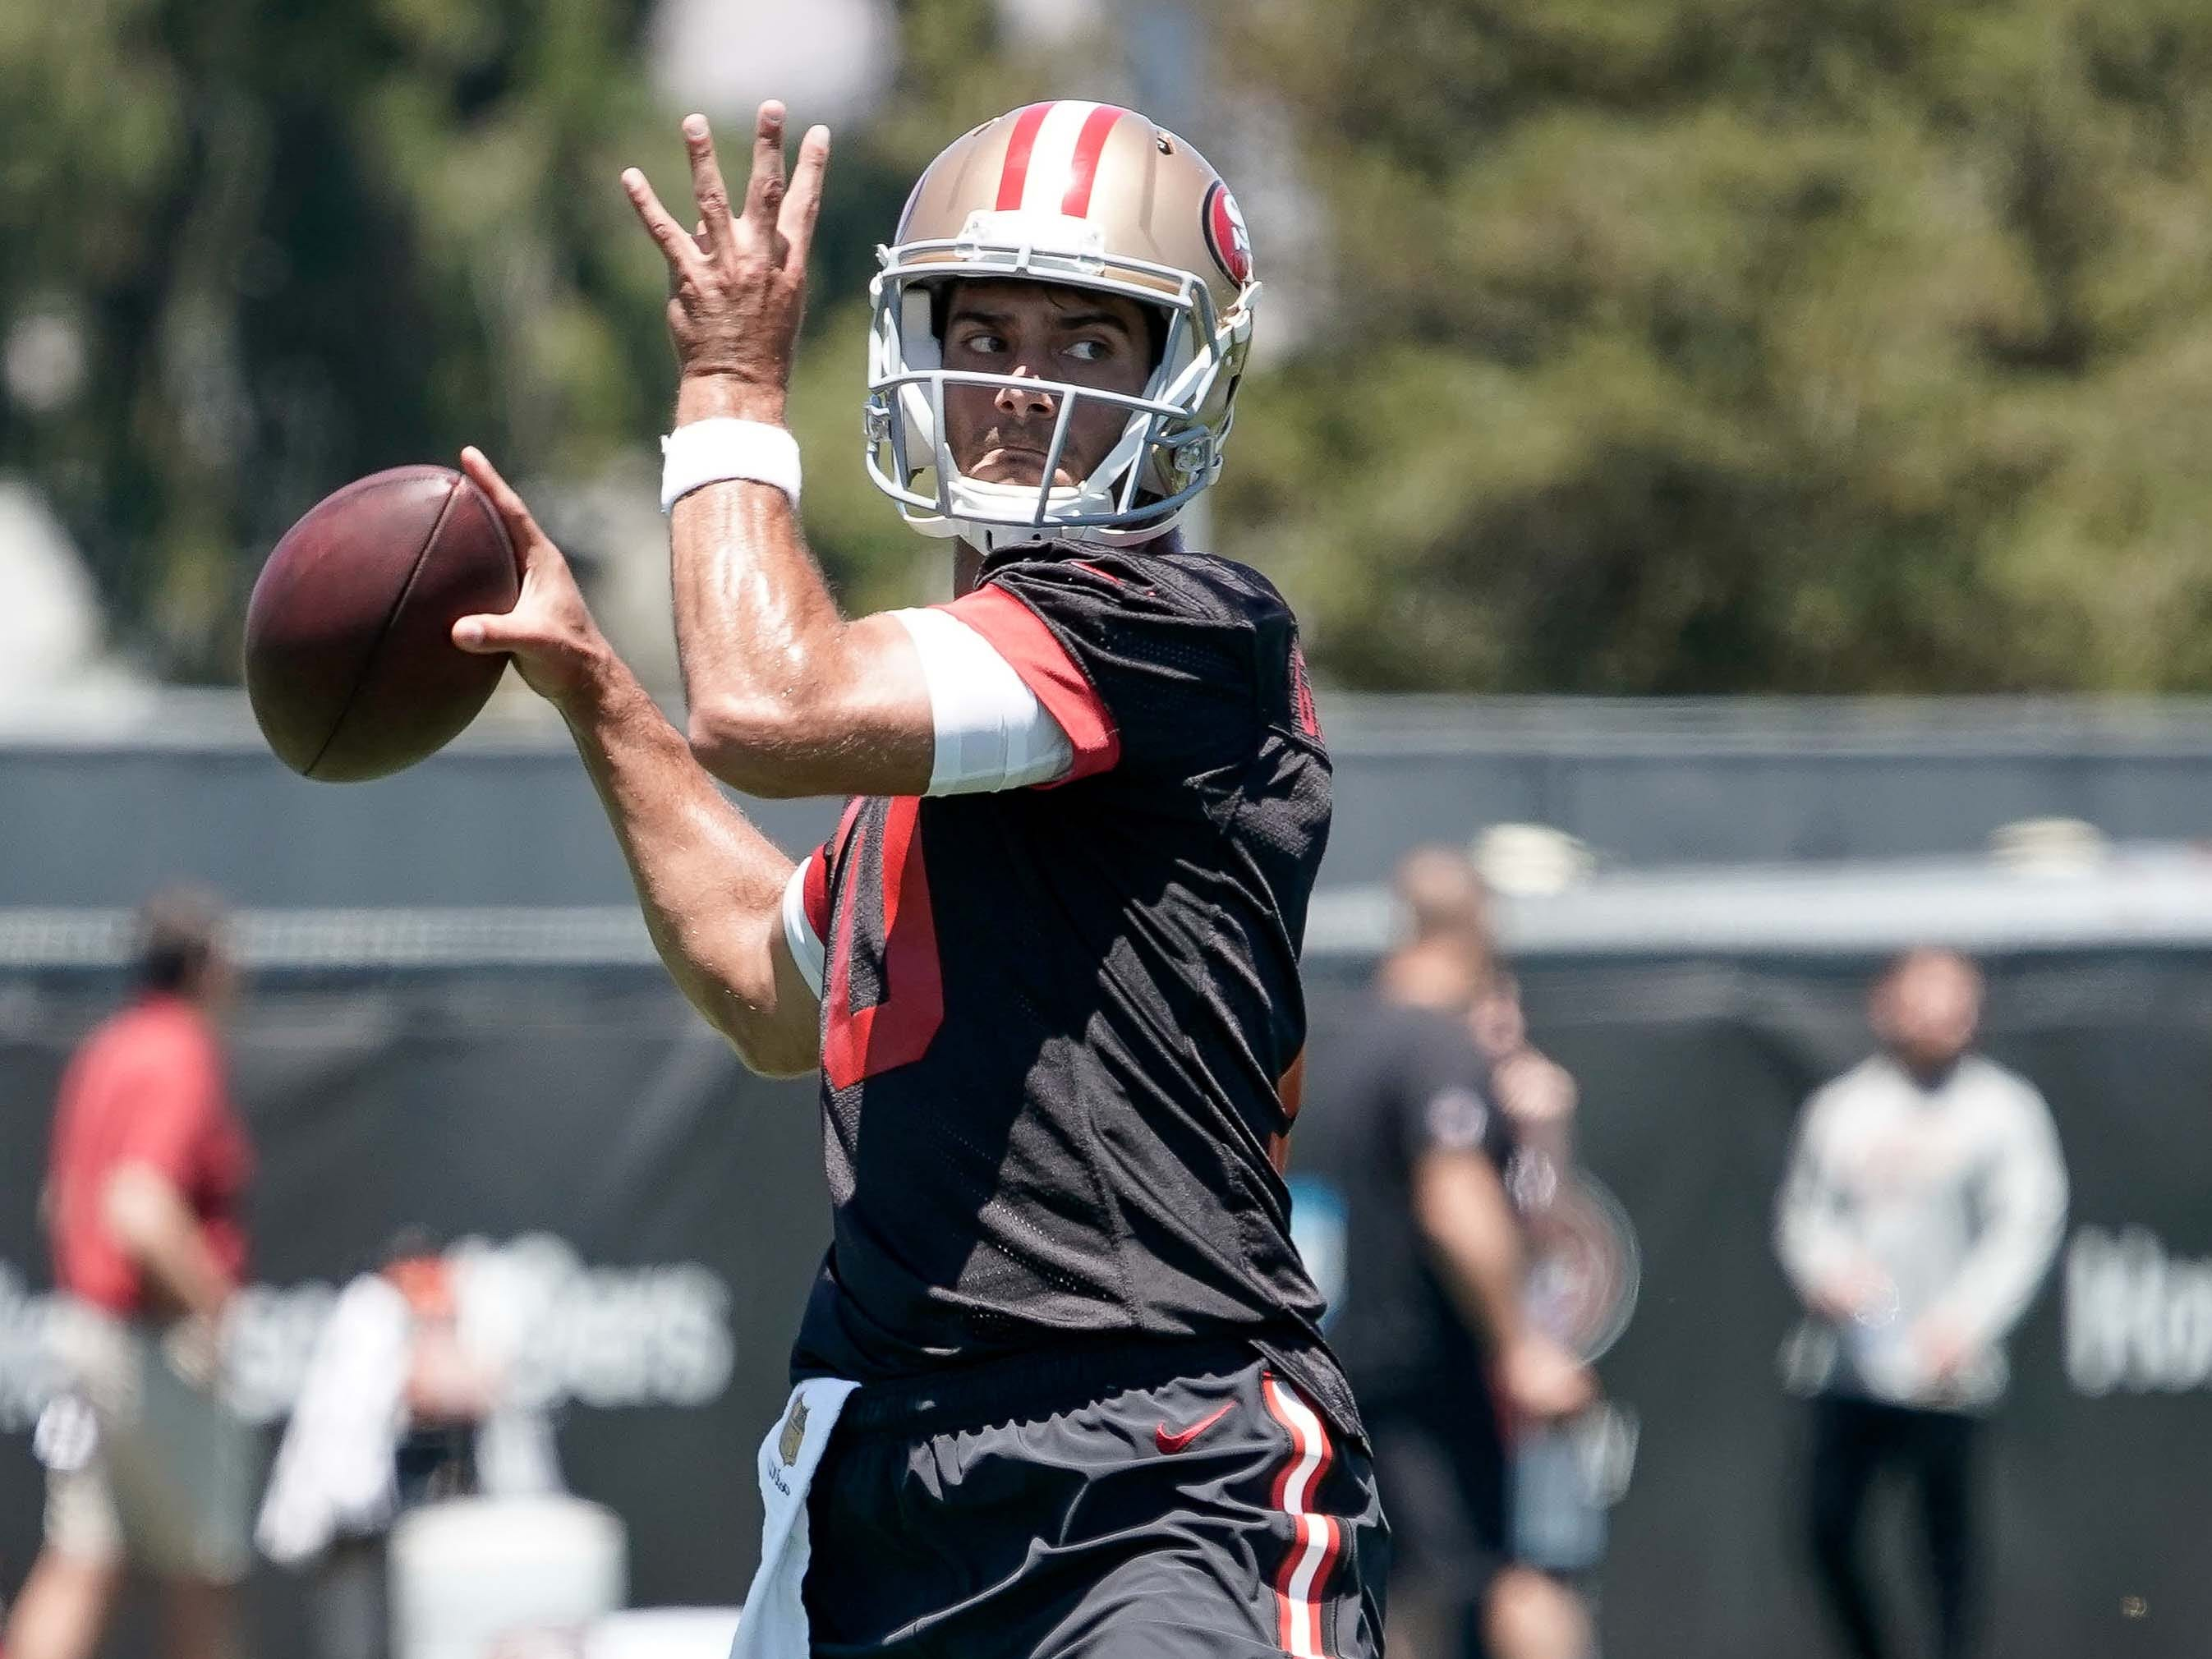 20. 49ers (16): Garoppolo buzz is great. But preseason expectations should be tempered (for now) by defense that's ranked 24th or worse last three years.